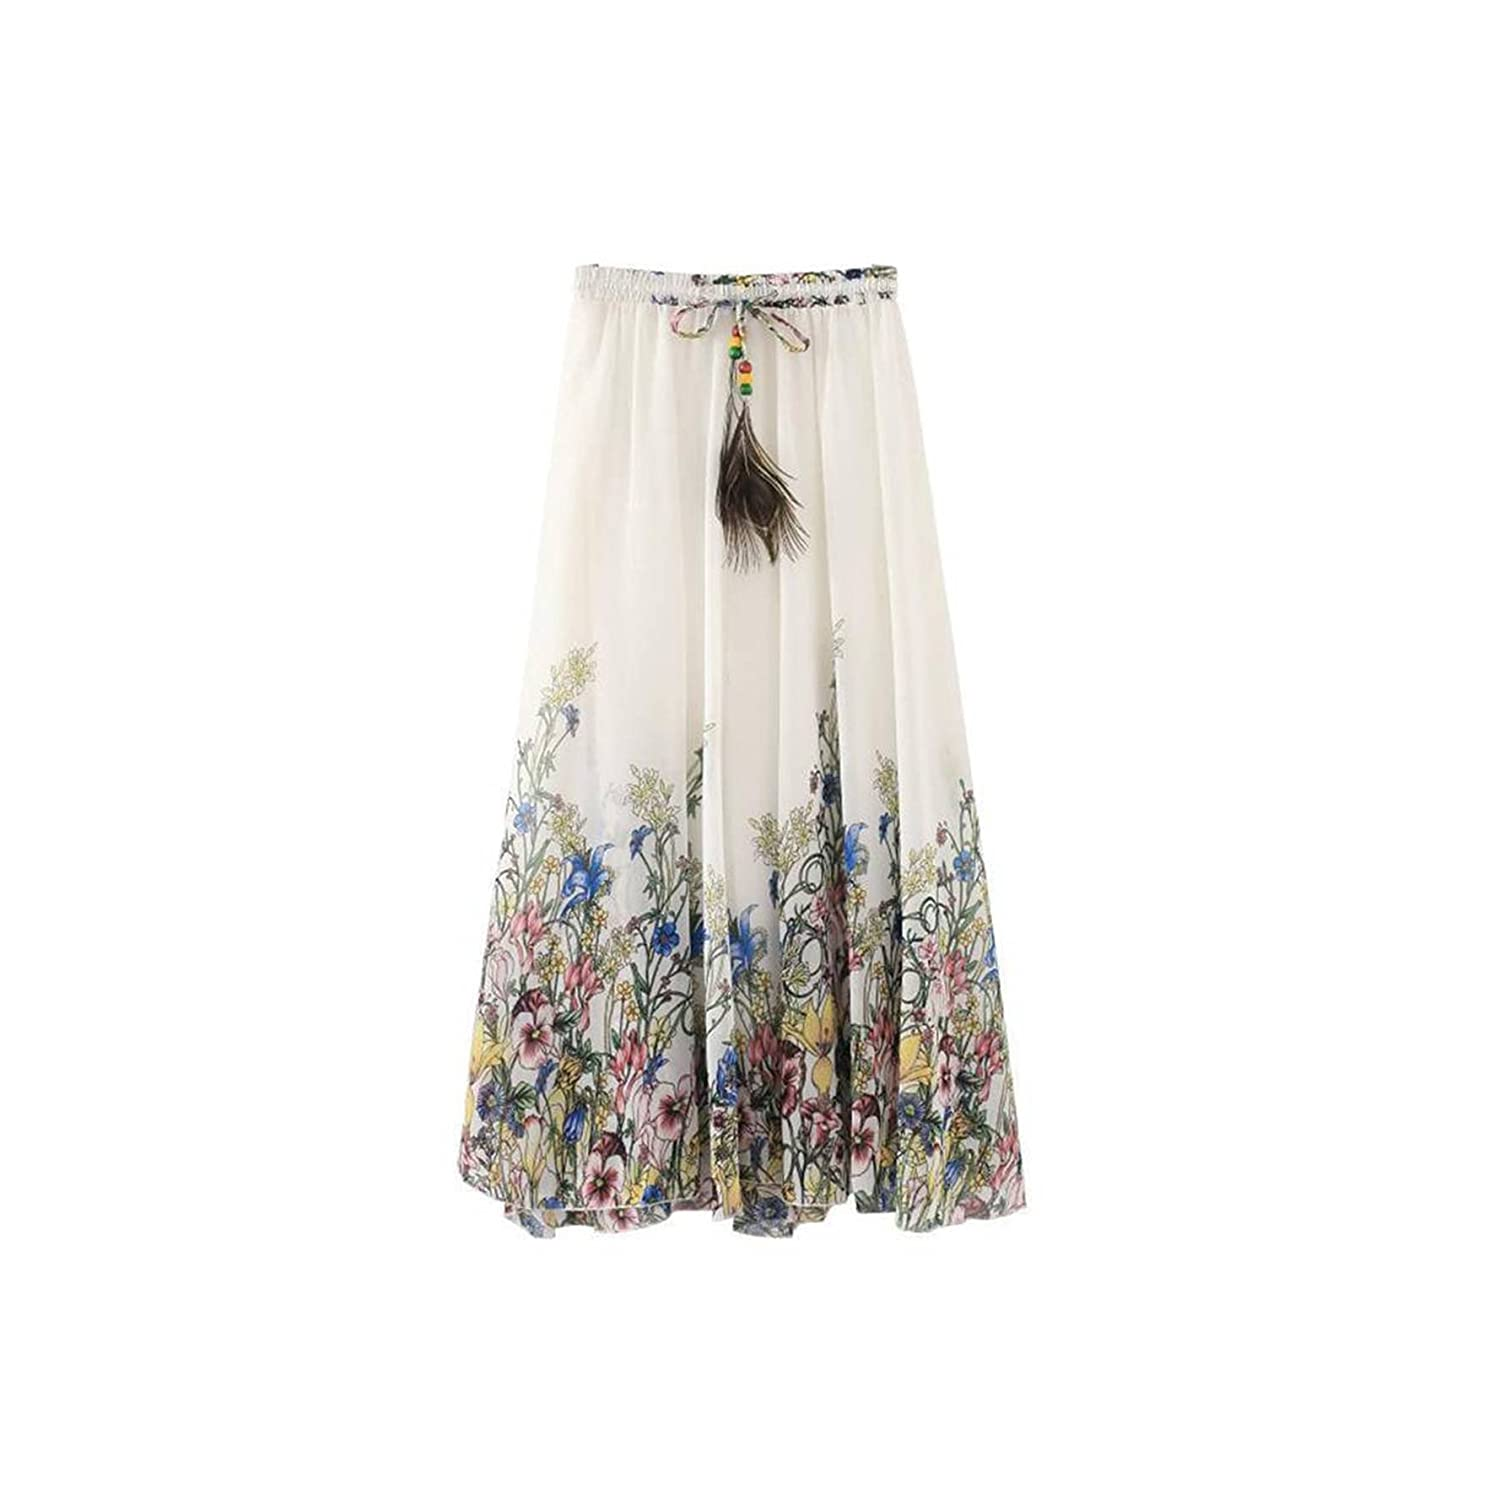 Kaxuyiiy Women's Casual Beach Peacock Feather Maxi Elastic Waist Long Pleated Skirt WS047